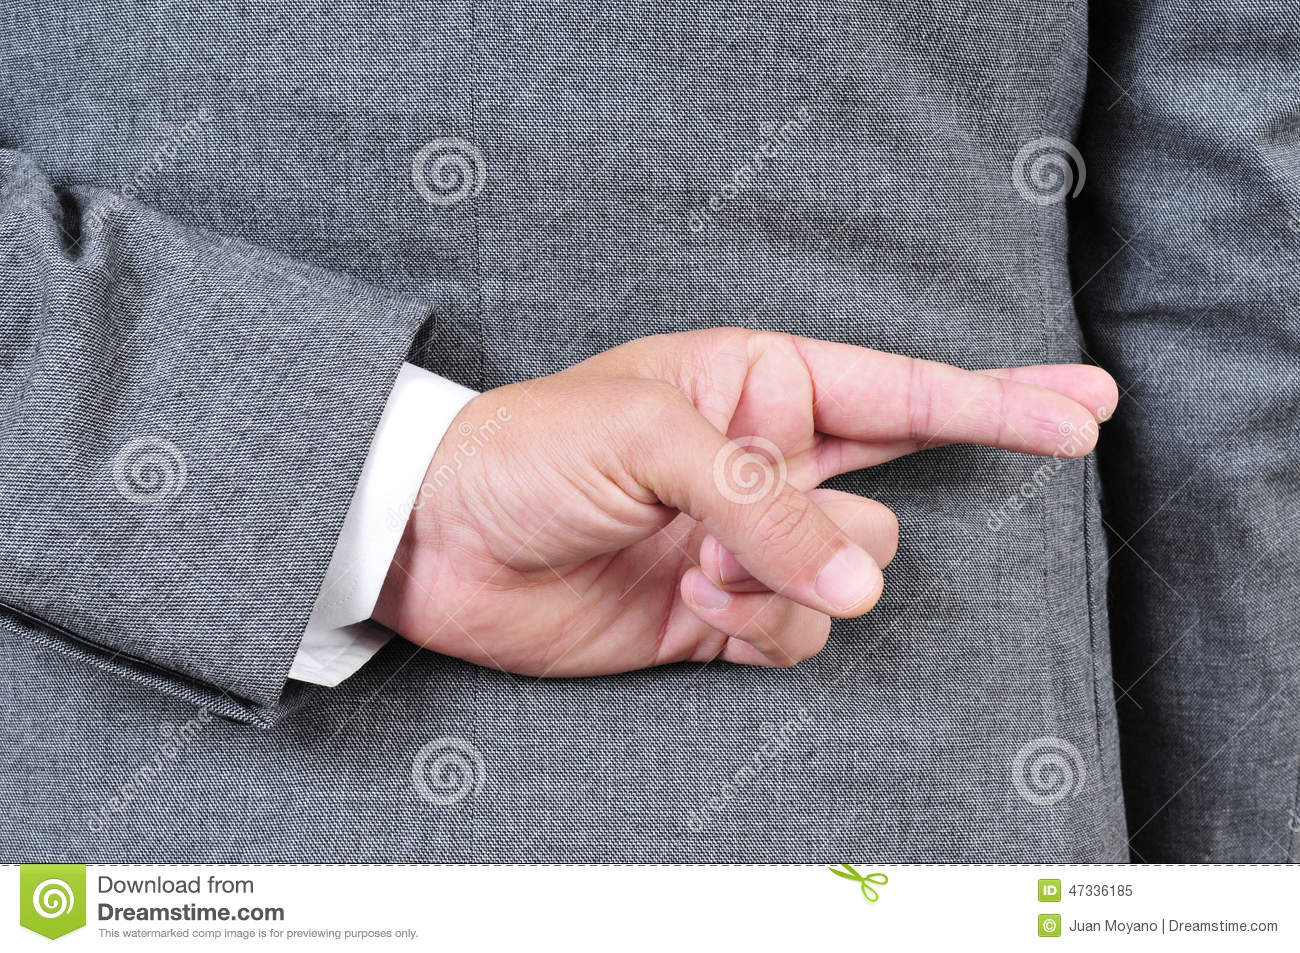 Man in suit crossing his fingers in his back